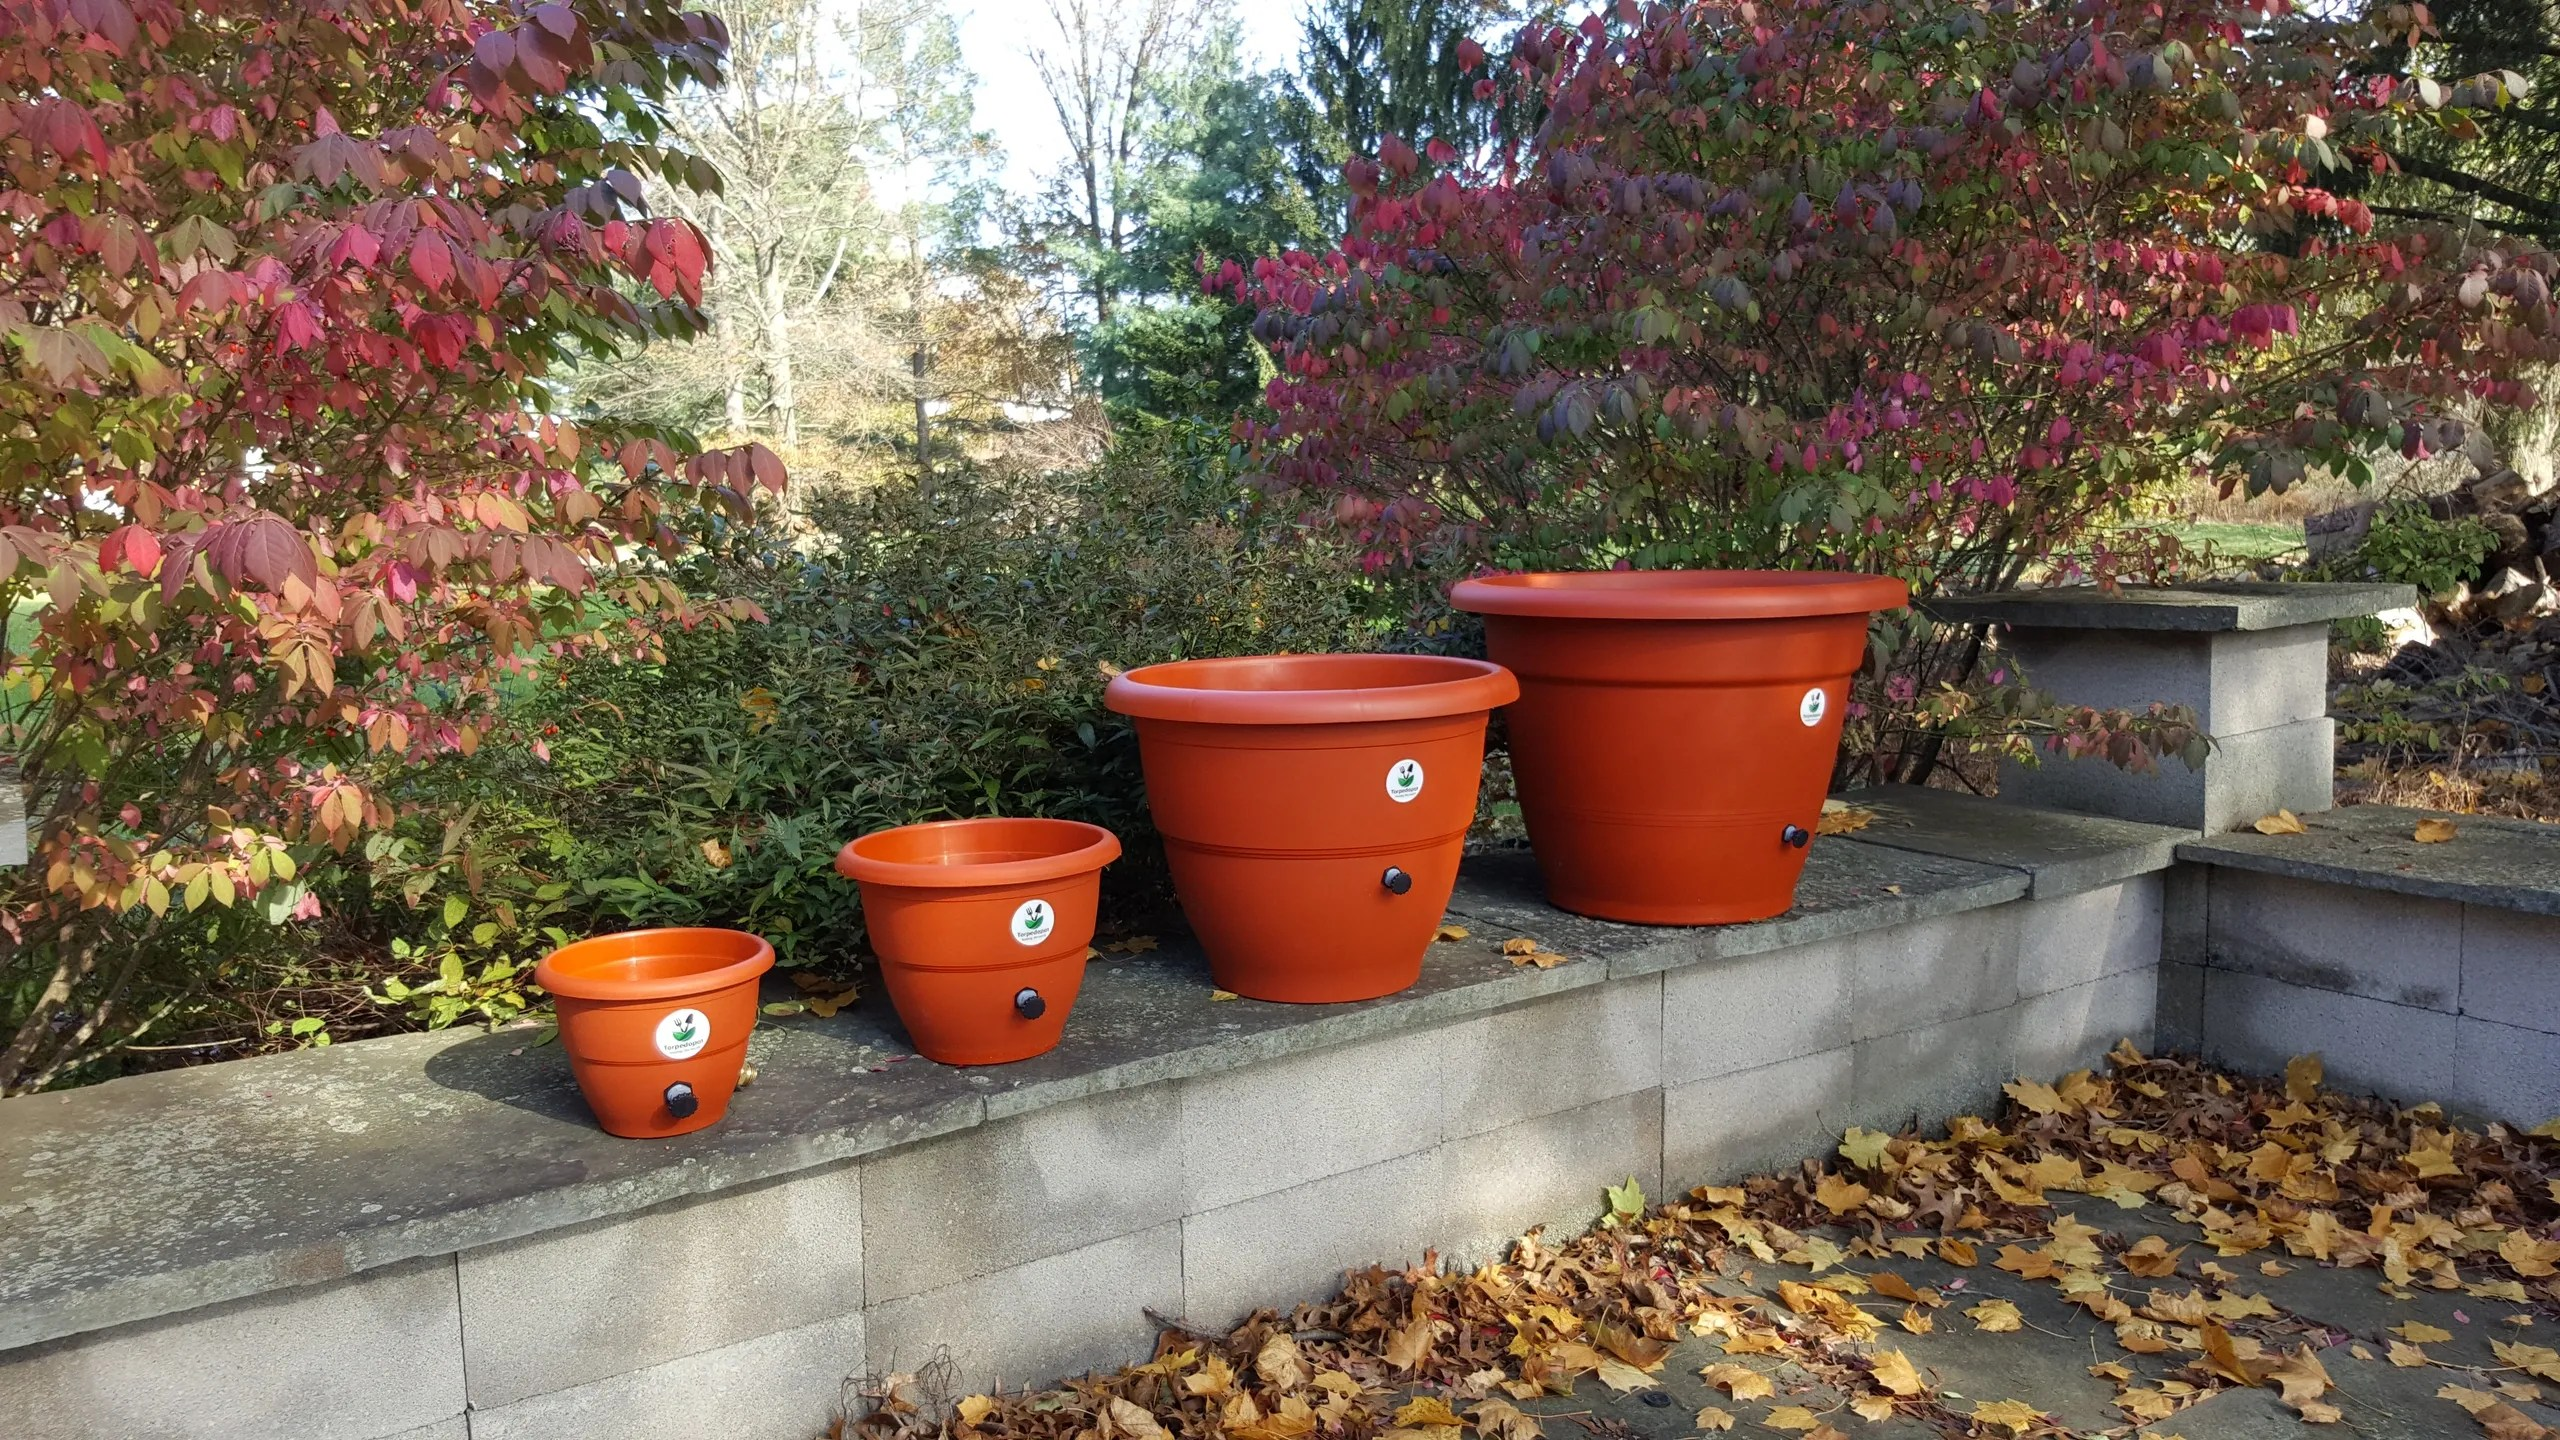 Self Watering Outdoor Planters Torpedopot Self Watering Planters Garden Planters